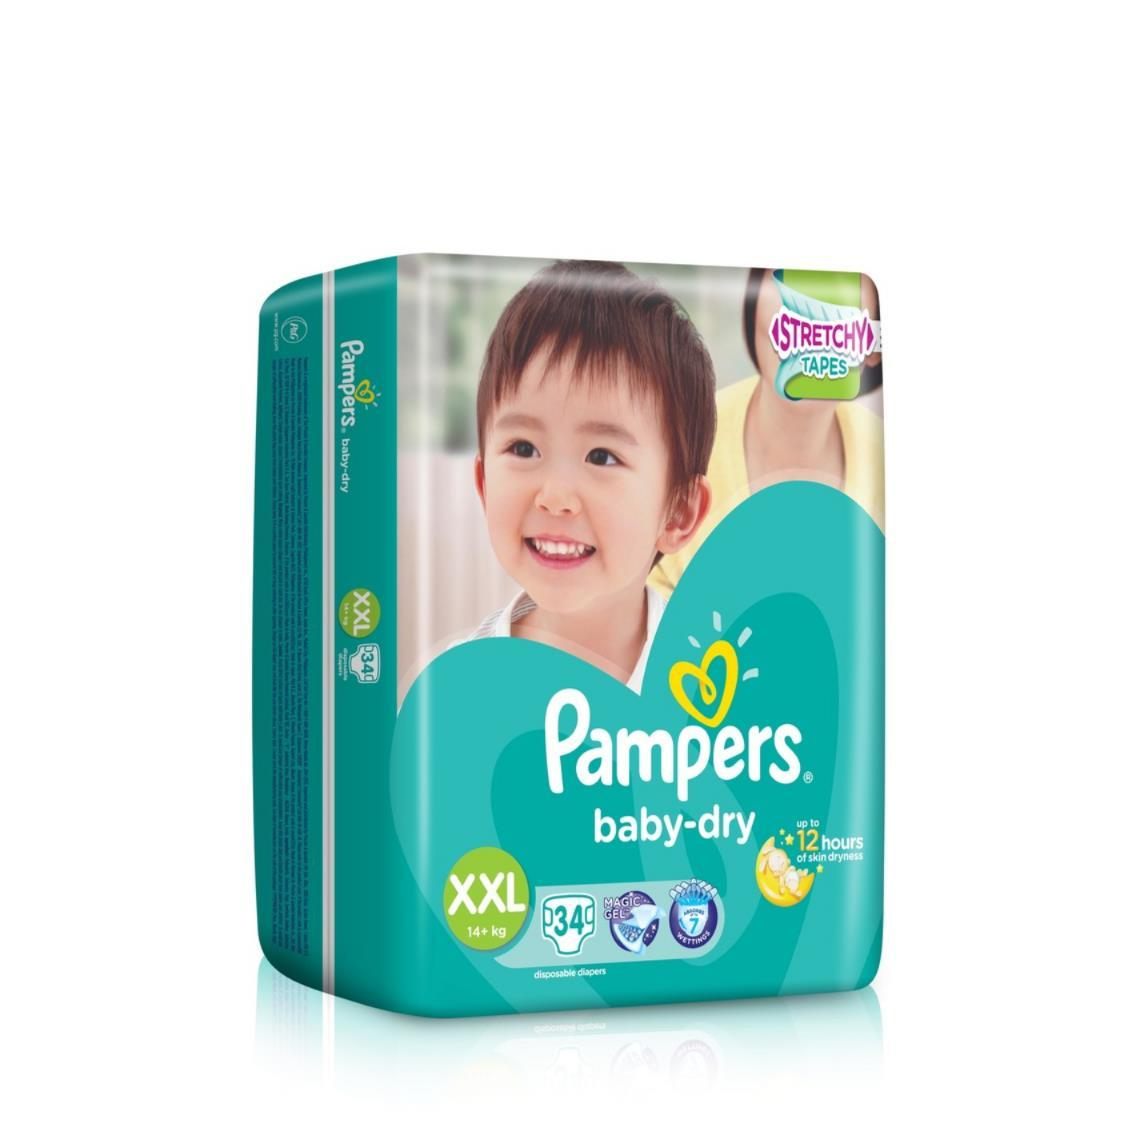 Pampers Baby Dry Diapers  XXL 34s 16kg